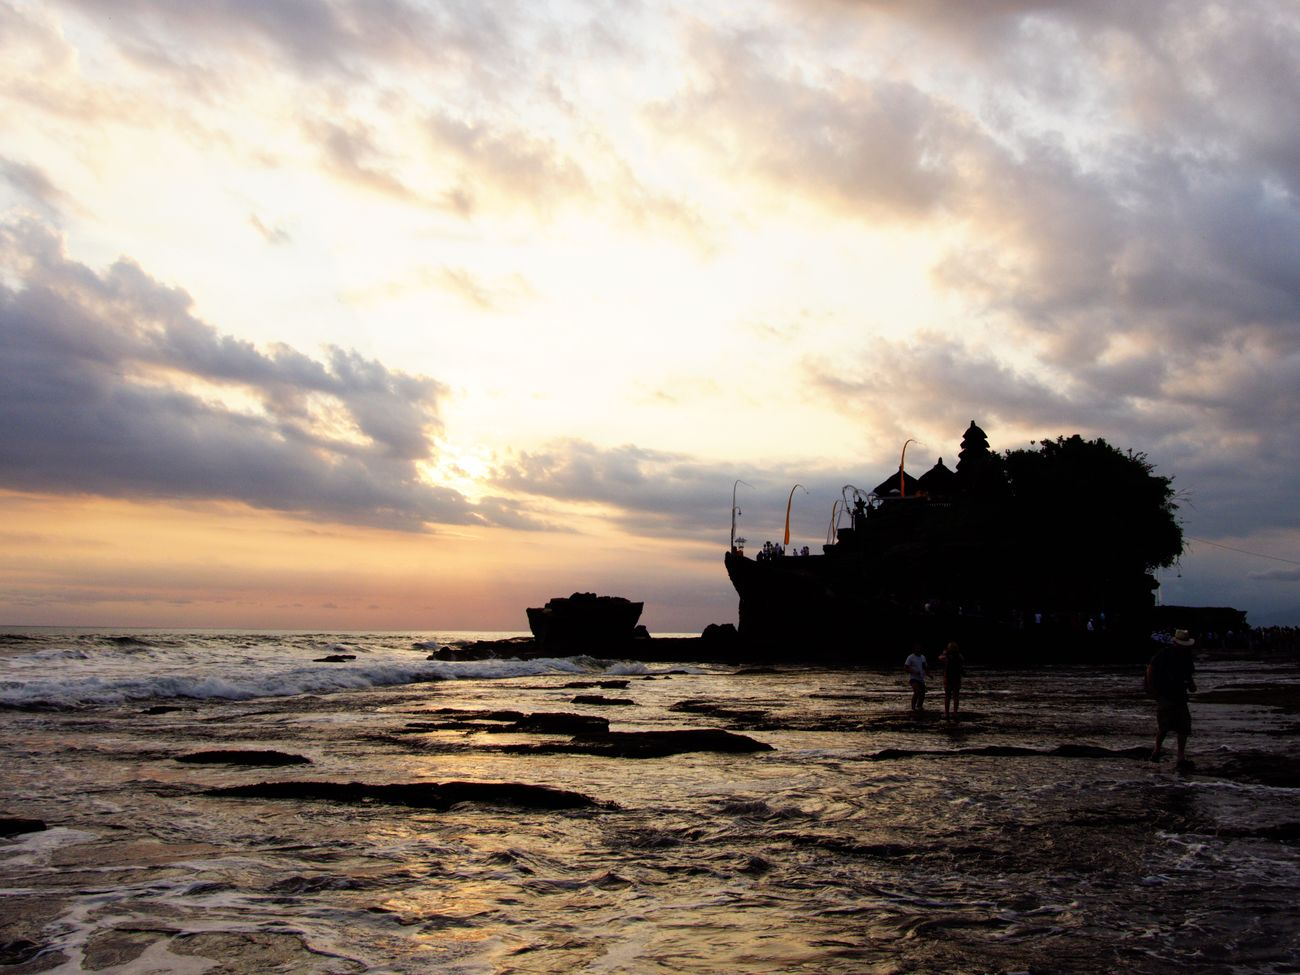 Tanah Lot Sunset Cloud - Sky Sky Sea Silhouette Water Beach Scenics Built Structure EyeEm Gallery Holidays Life Is A Beach Light And Shadow On The Beach Bali Silhouette Holiday Travel EyeEm Best Shots Traveling Bali❤️Love